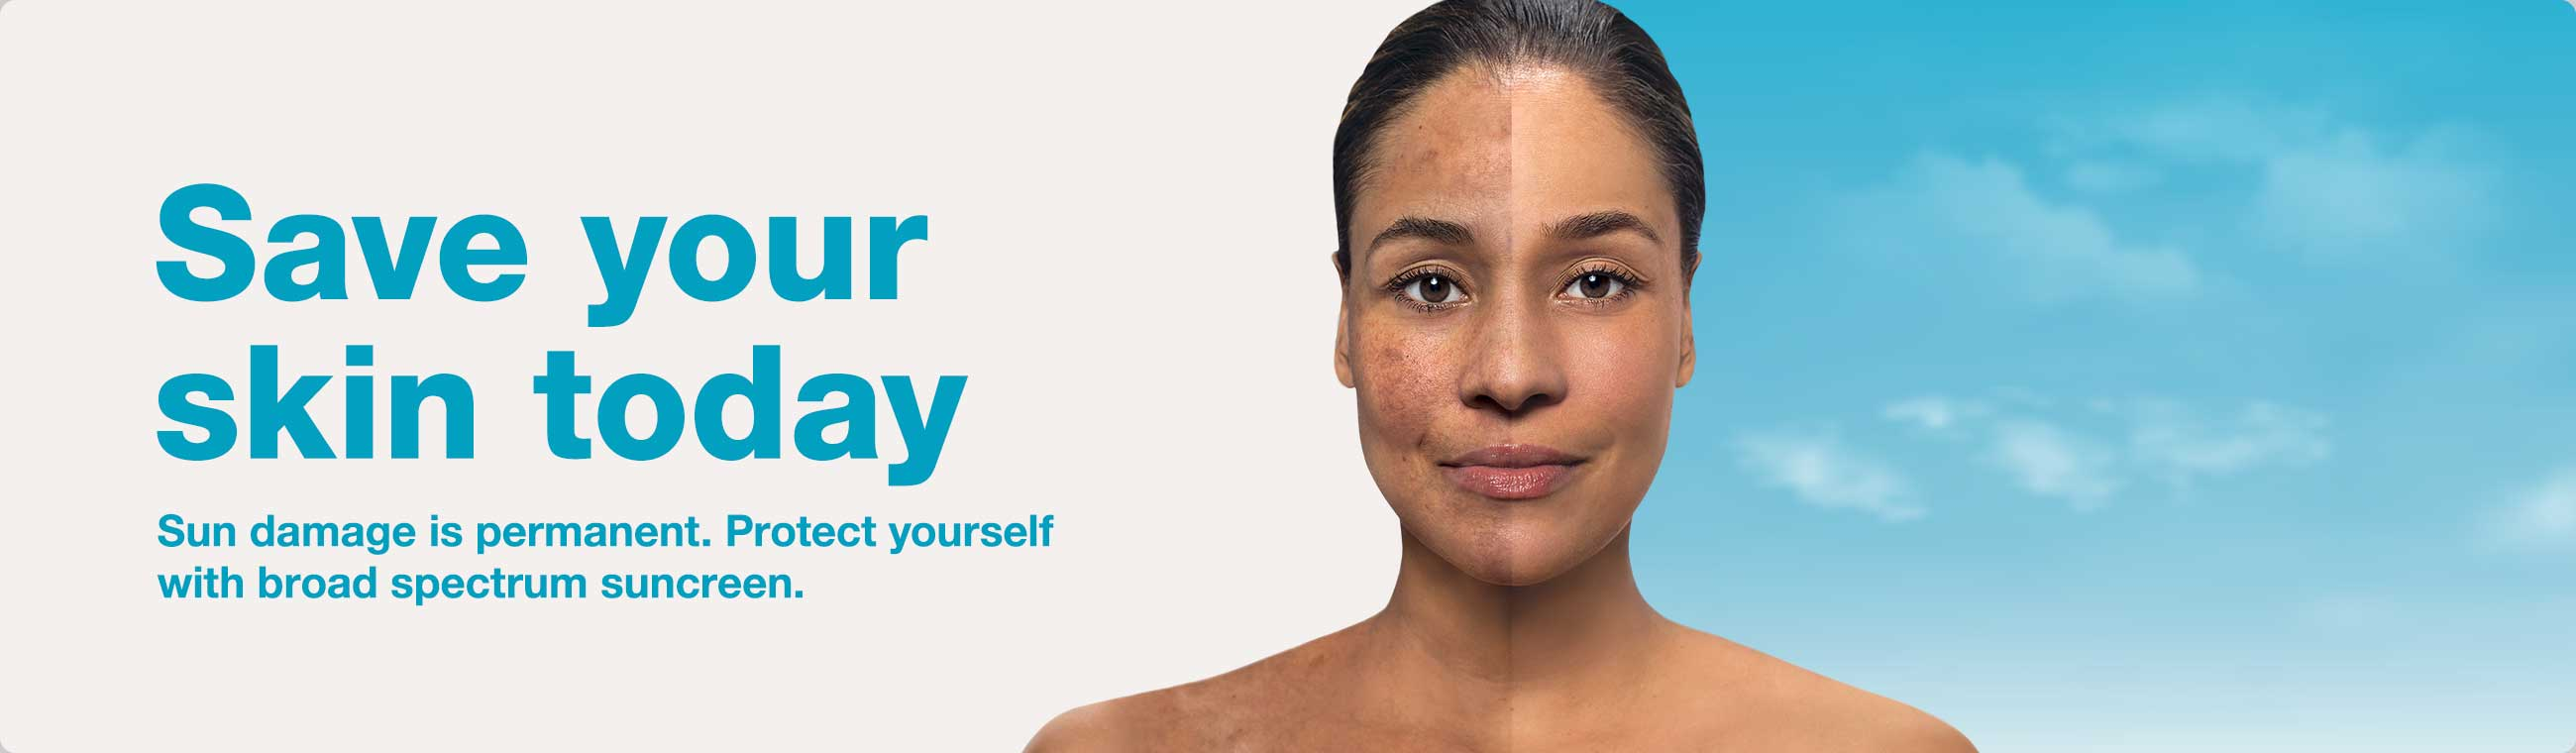 Save your skin today. Sun damage is permanent. Protect yourself with broad spectrum sunscreen.